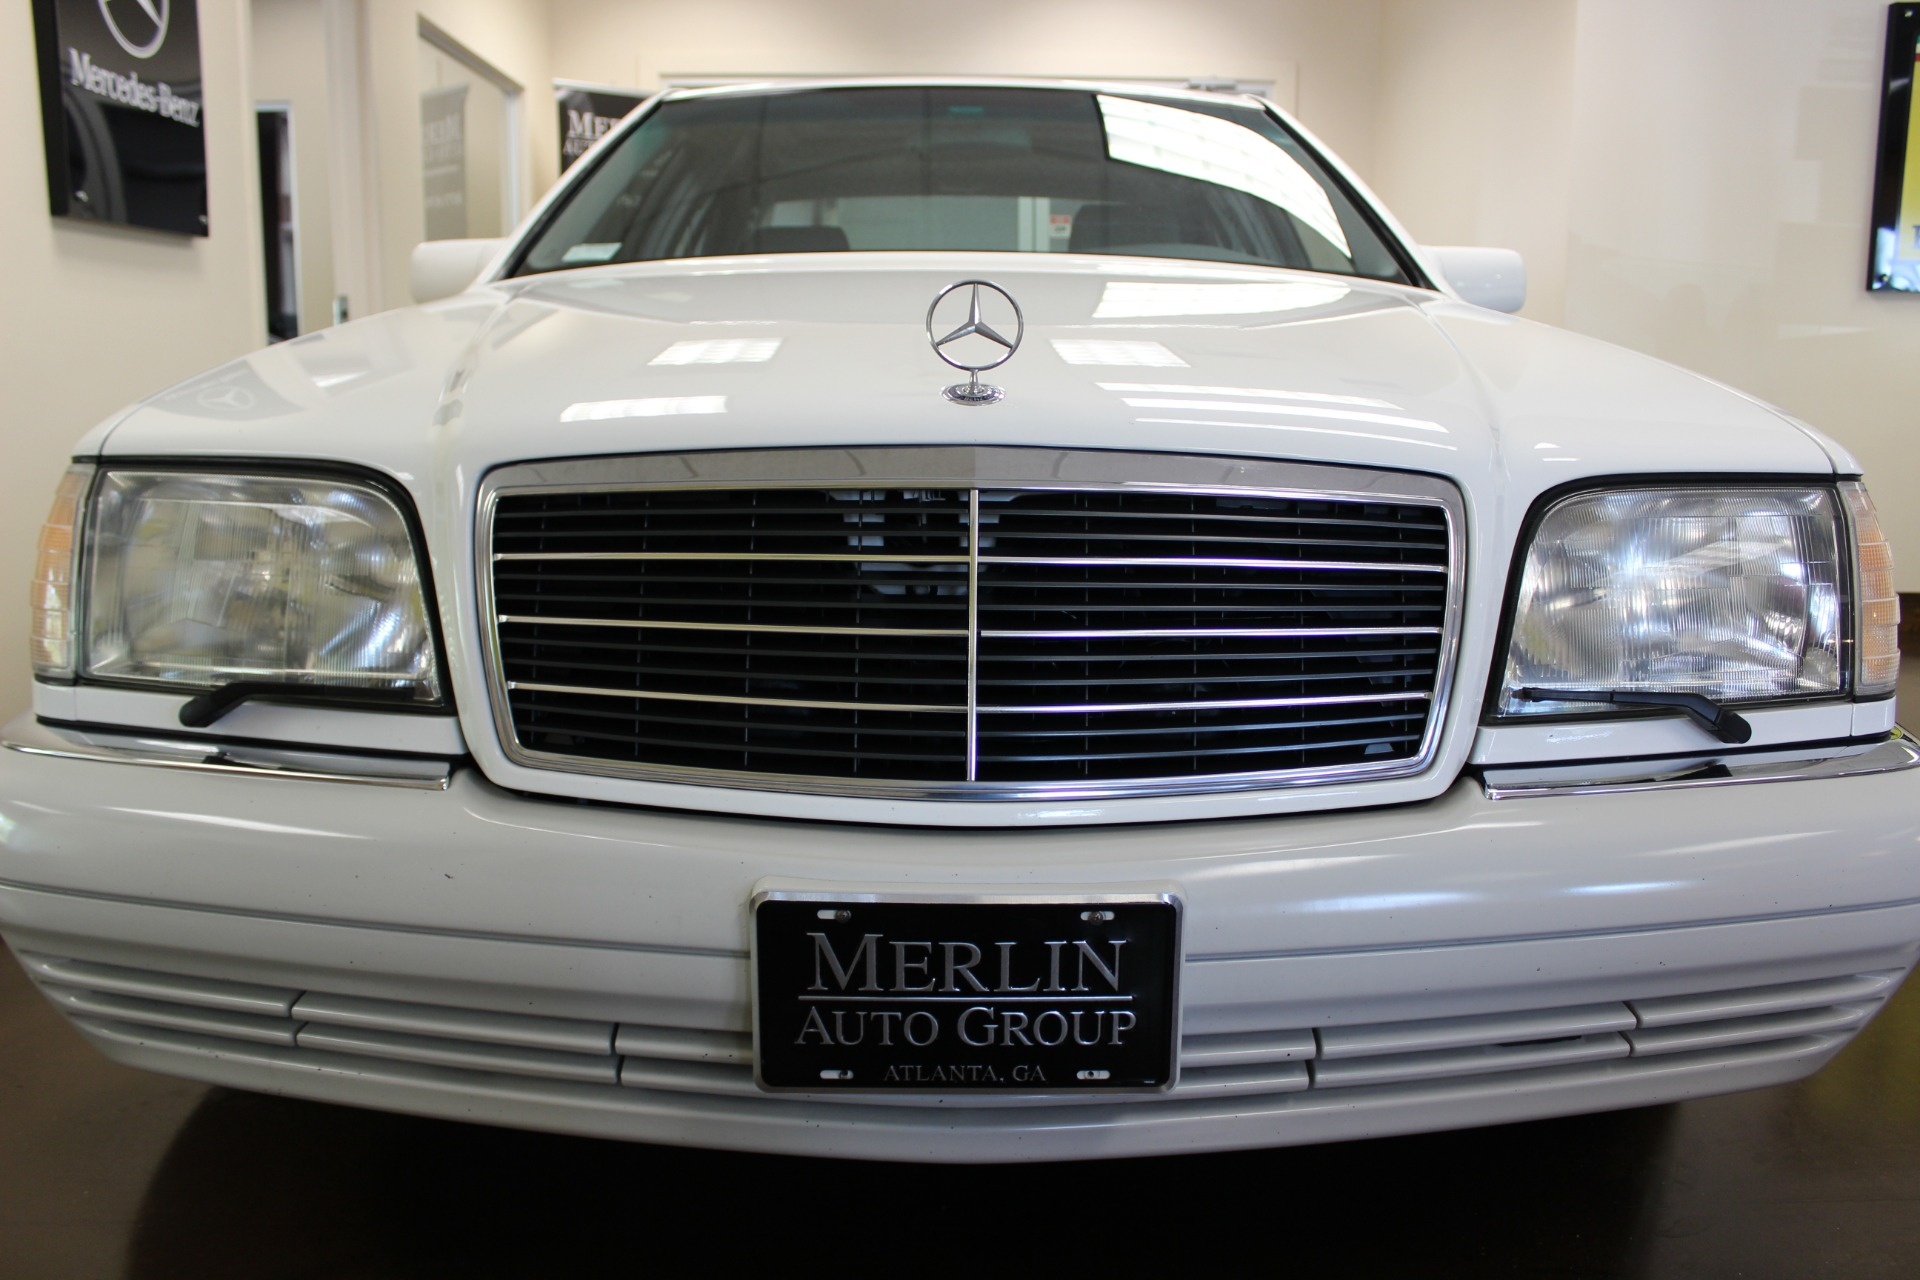 Used 1995 mercedes benz s class white sedan v8 a for 1995 mercedes benz s class